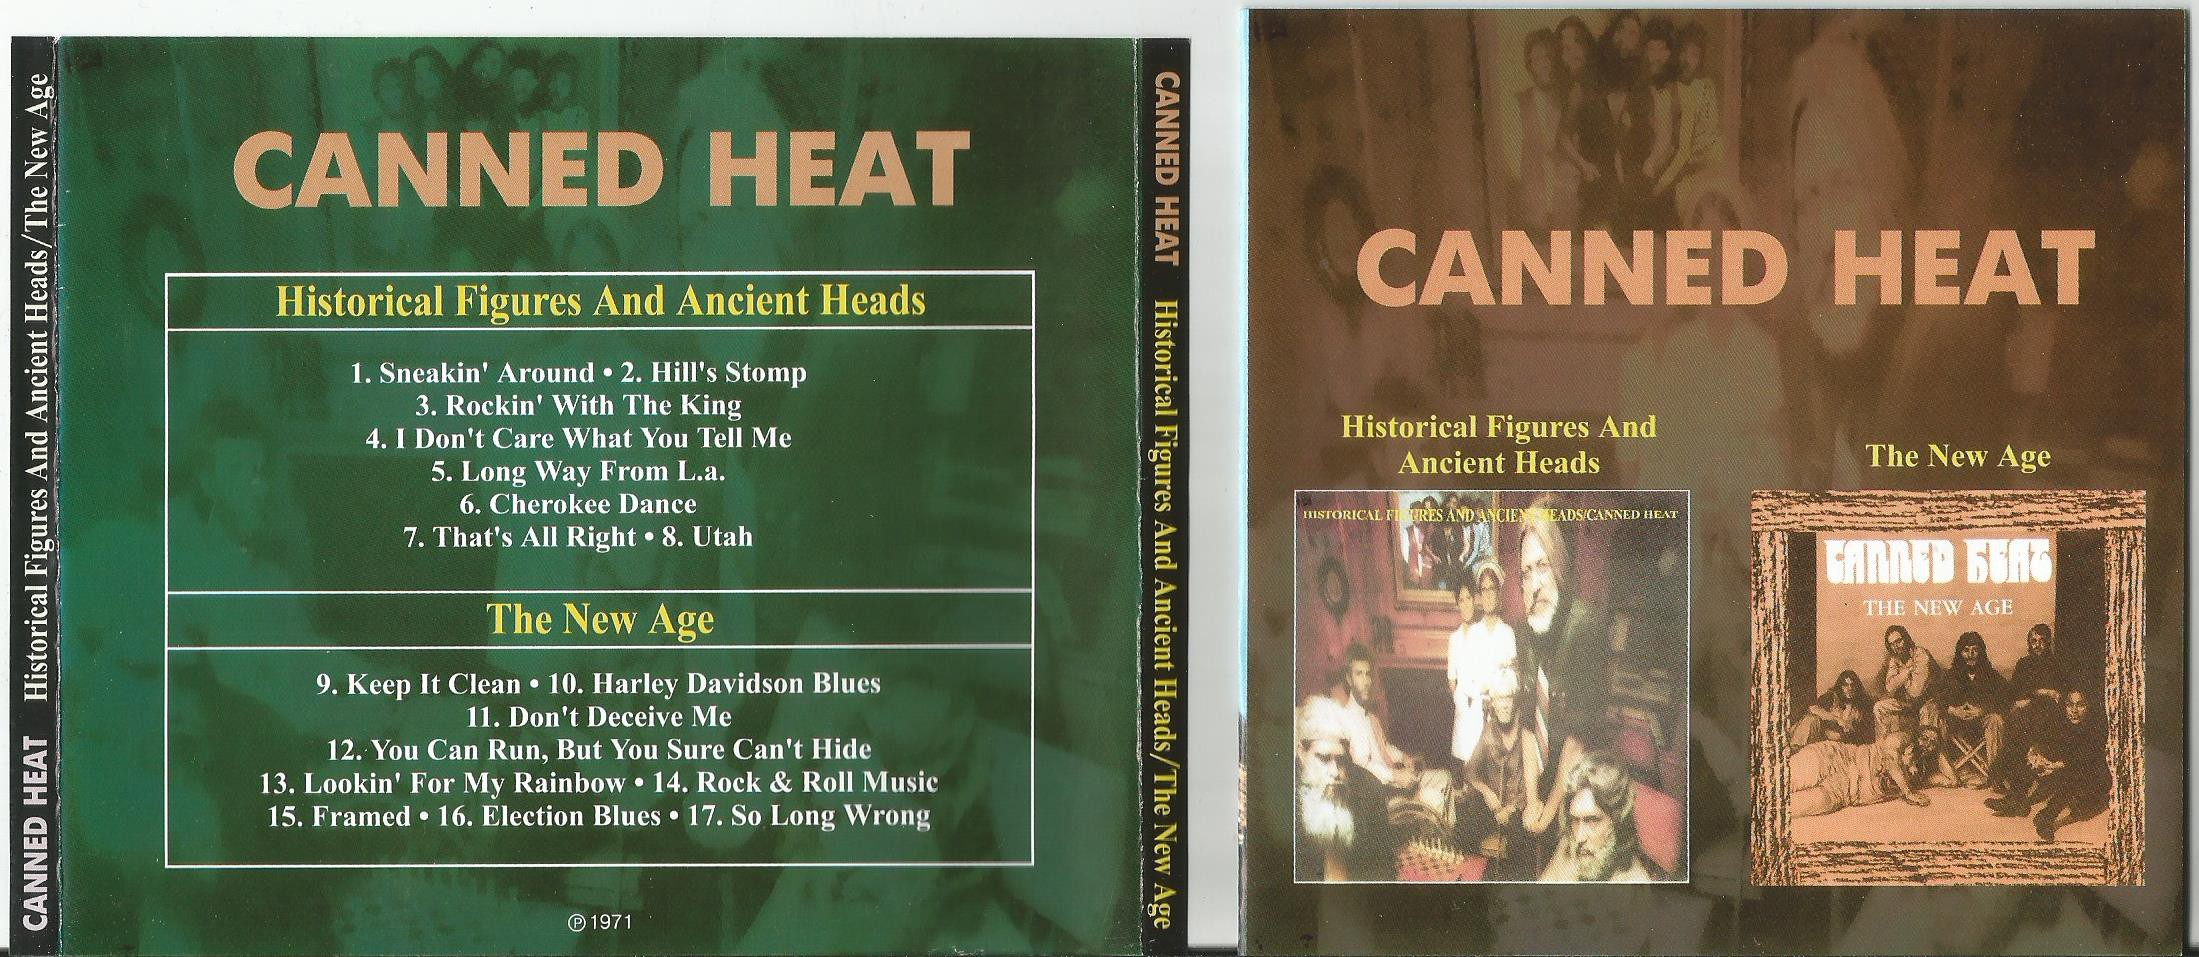 CANNED HEAT - Historical Figures And Ancient Heads/ The New Age (2 In 1cd)